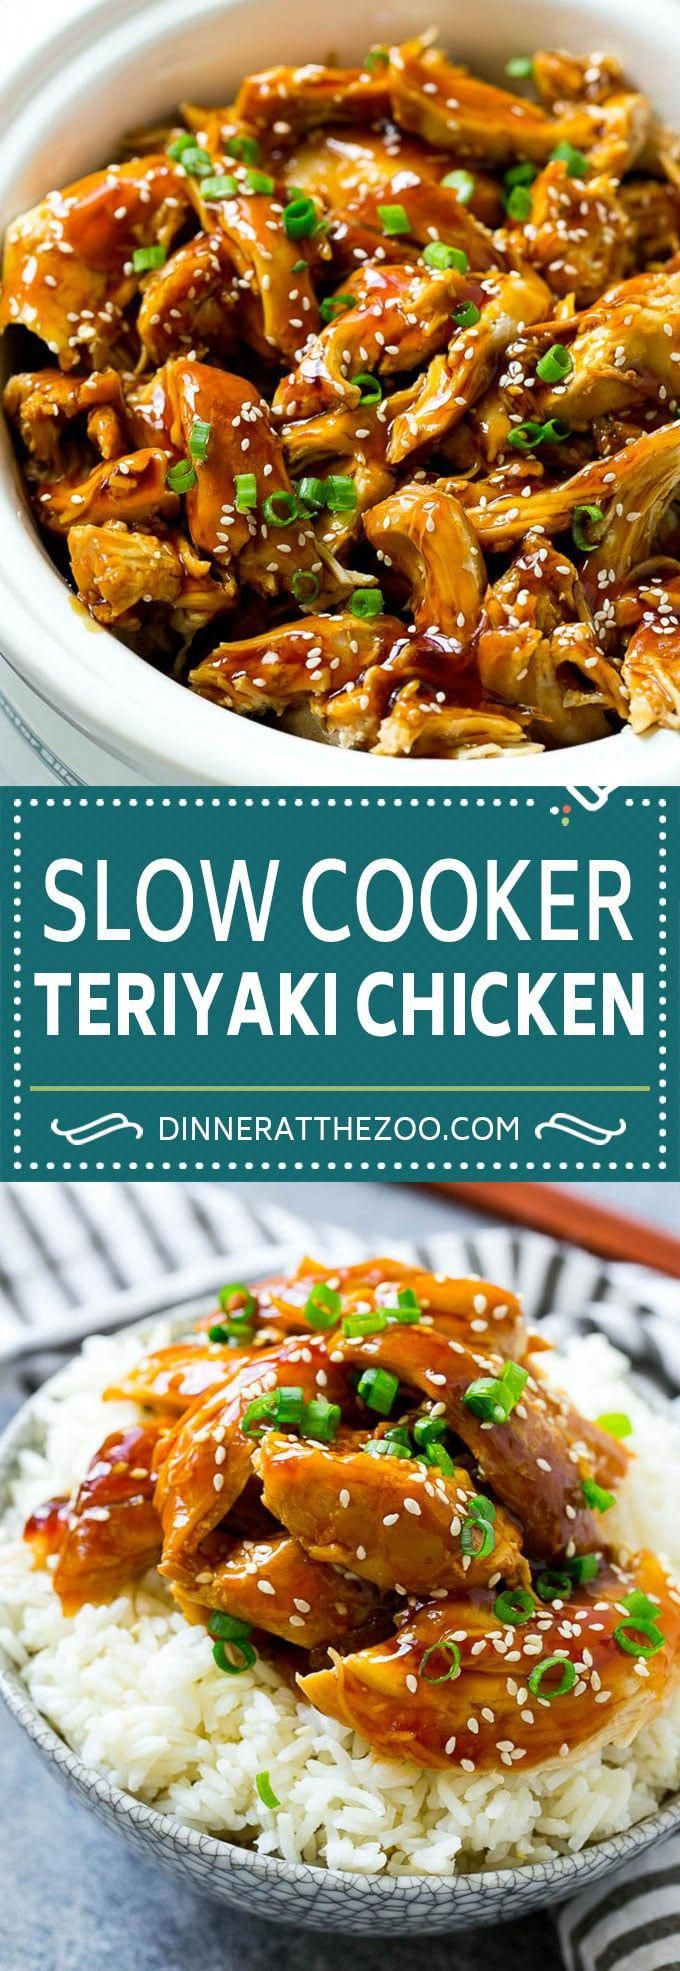 Slow Cooker Teriyaki Chicken - Dinner at the Zoo